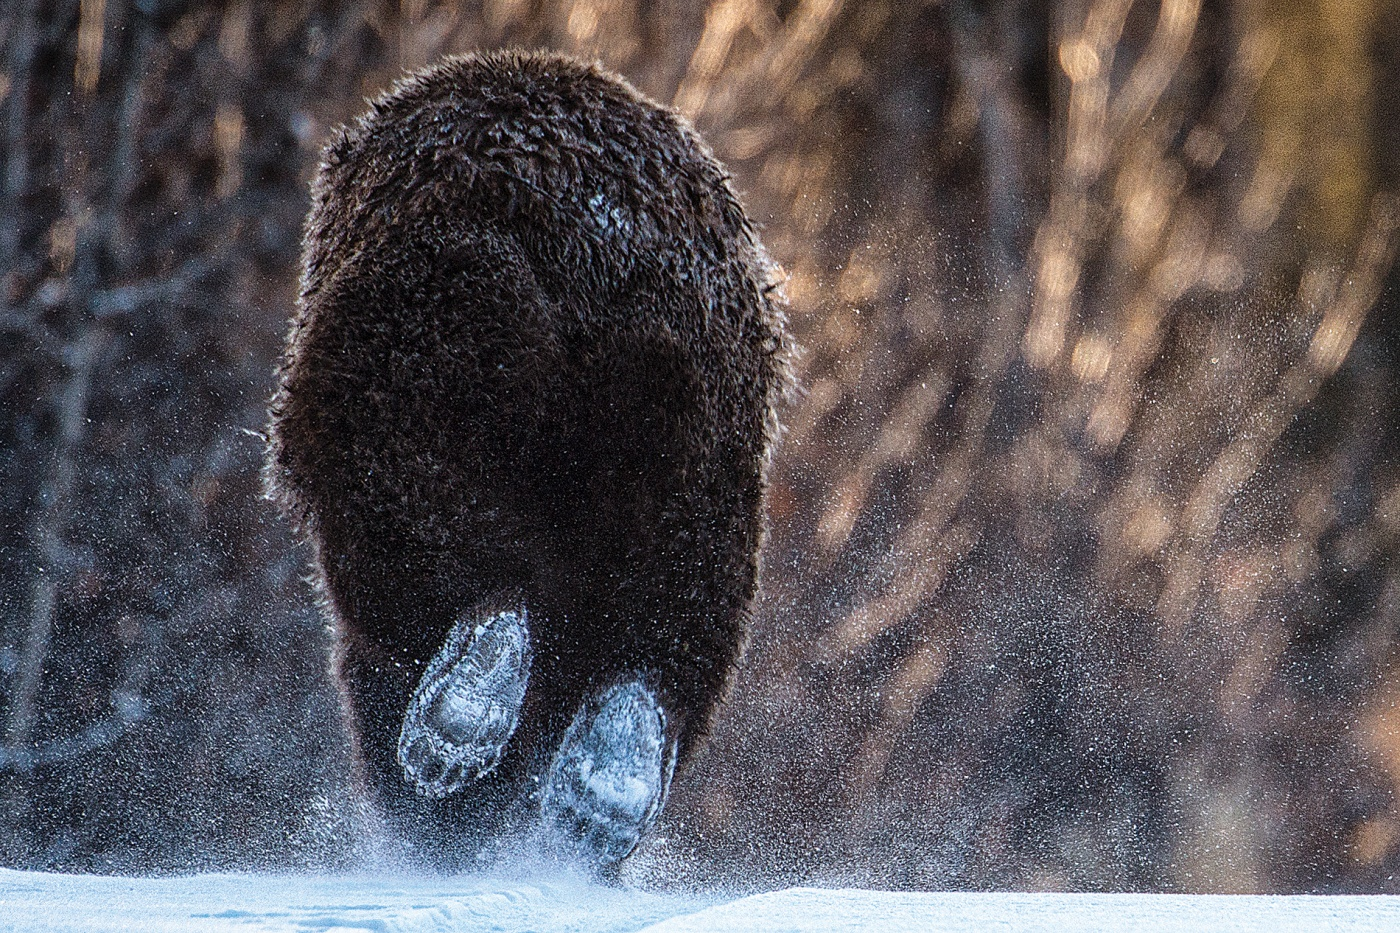 A grizzly bear flees a photographer